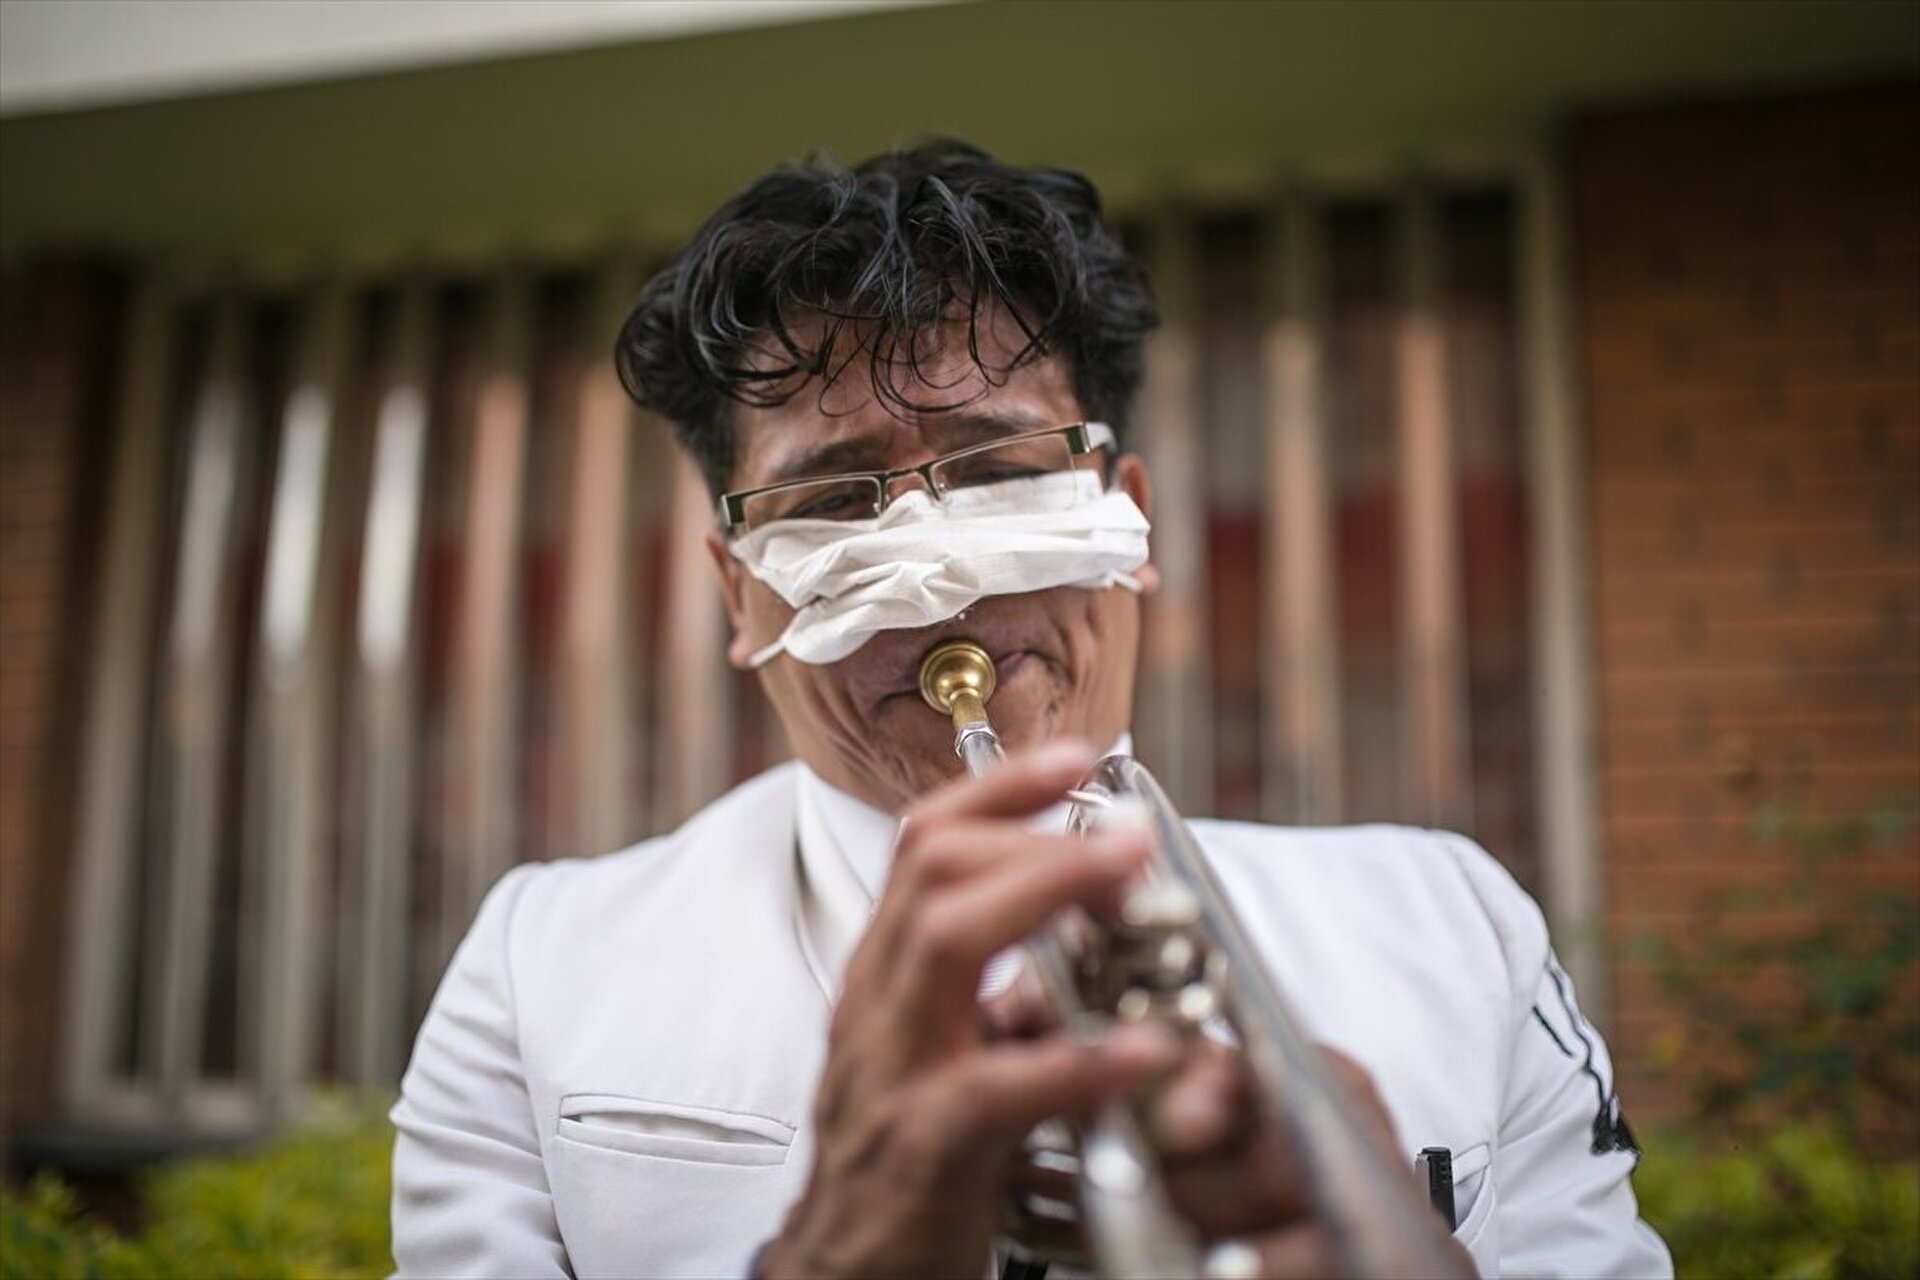 Colombia: Mariachis band delivers serenate at the streets during COVID-19 pandemic